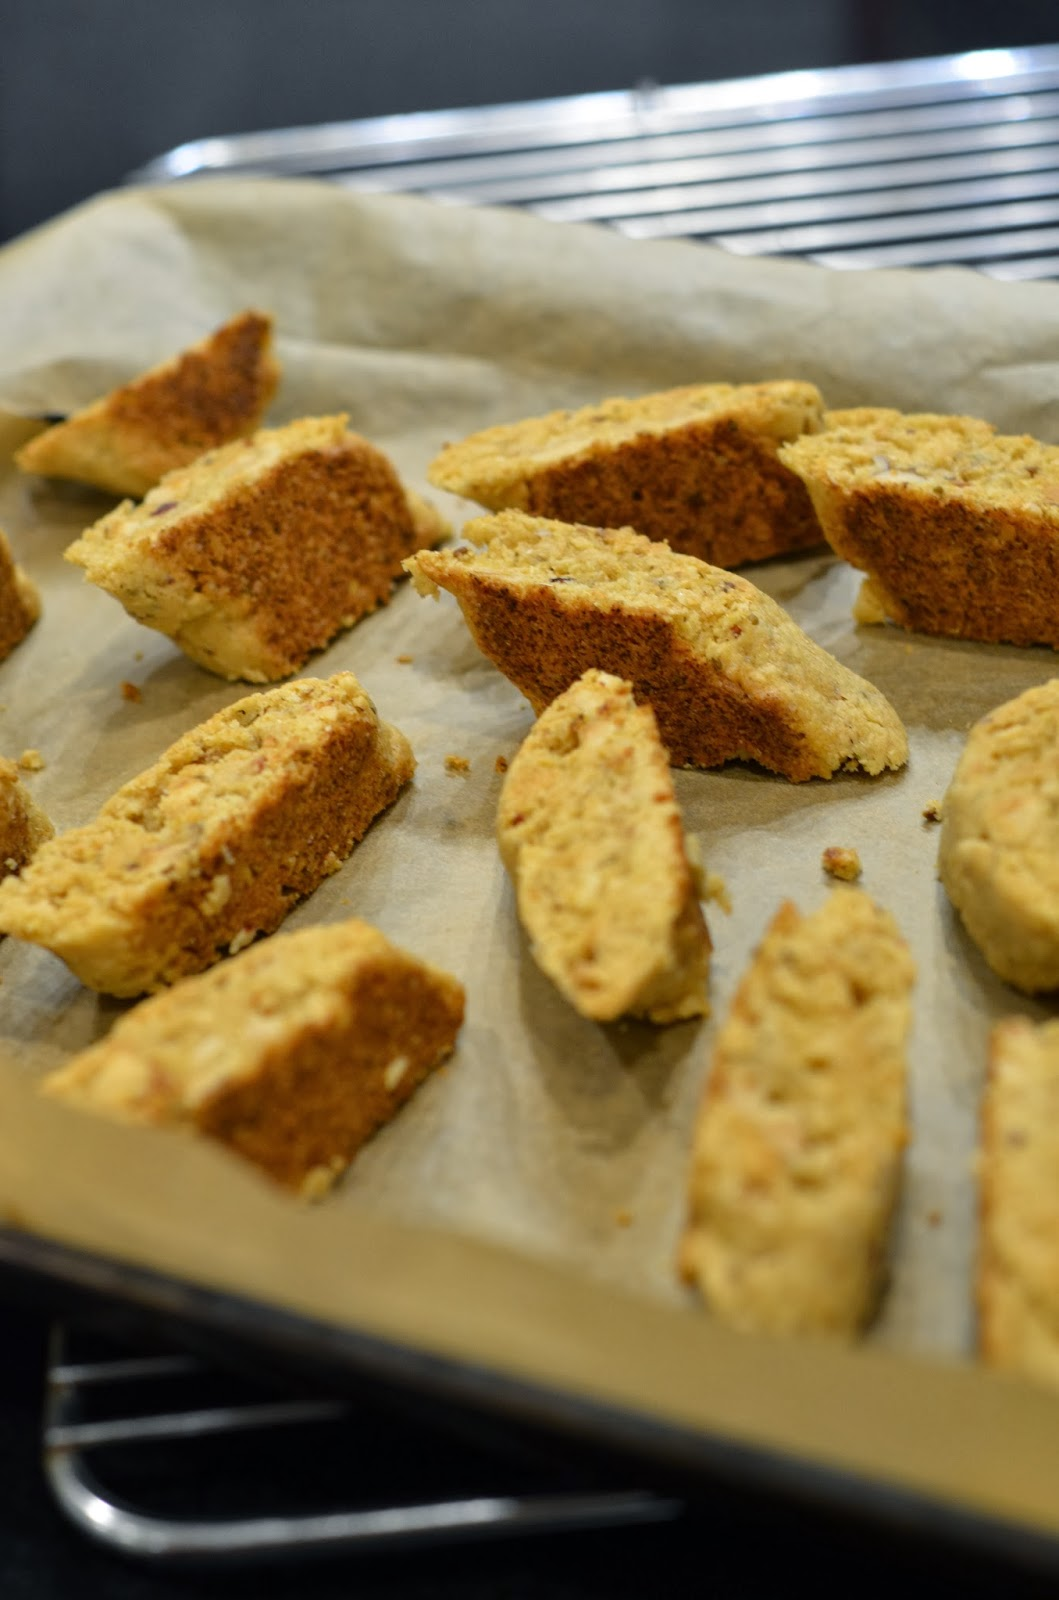 Thrifty Kitchen: Hazelnut (Cornmeal) Biscotti